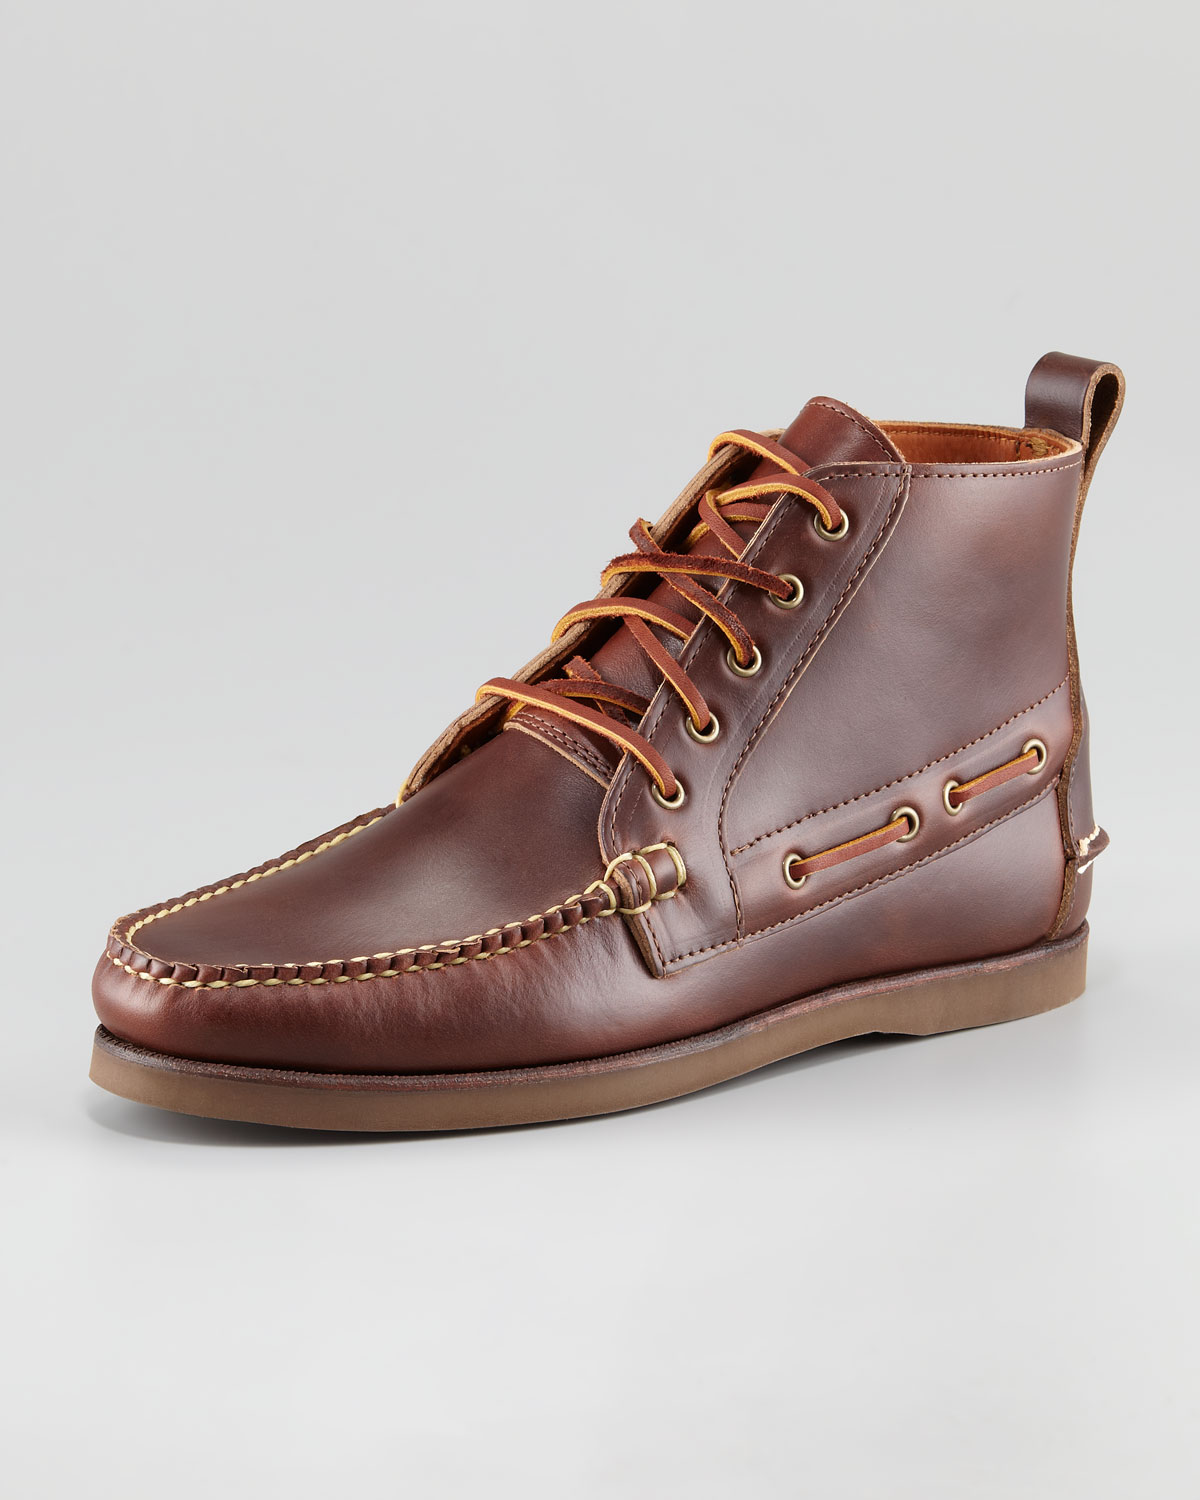 Polo Ralph Lauren Brown Leather Shoes